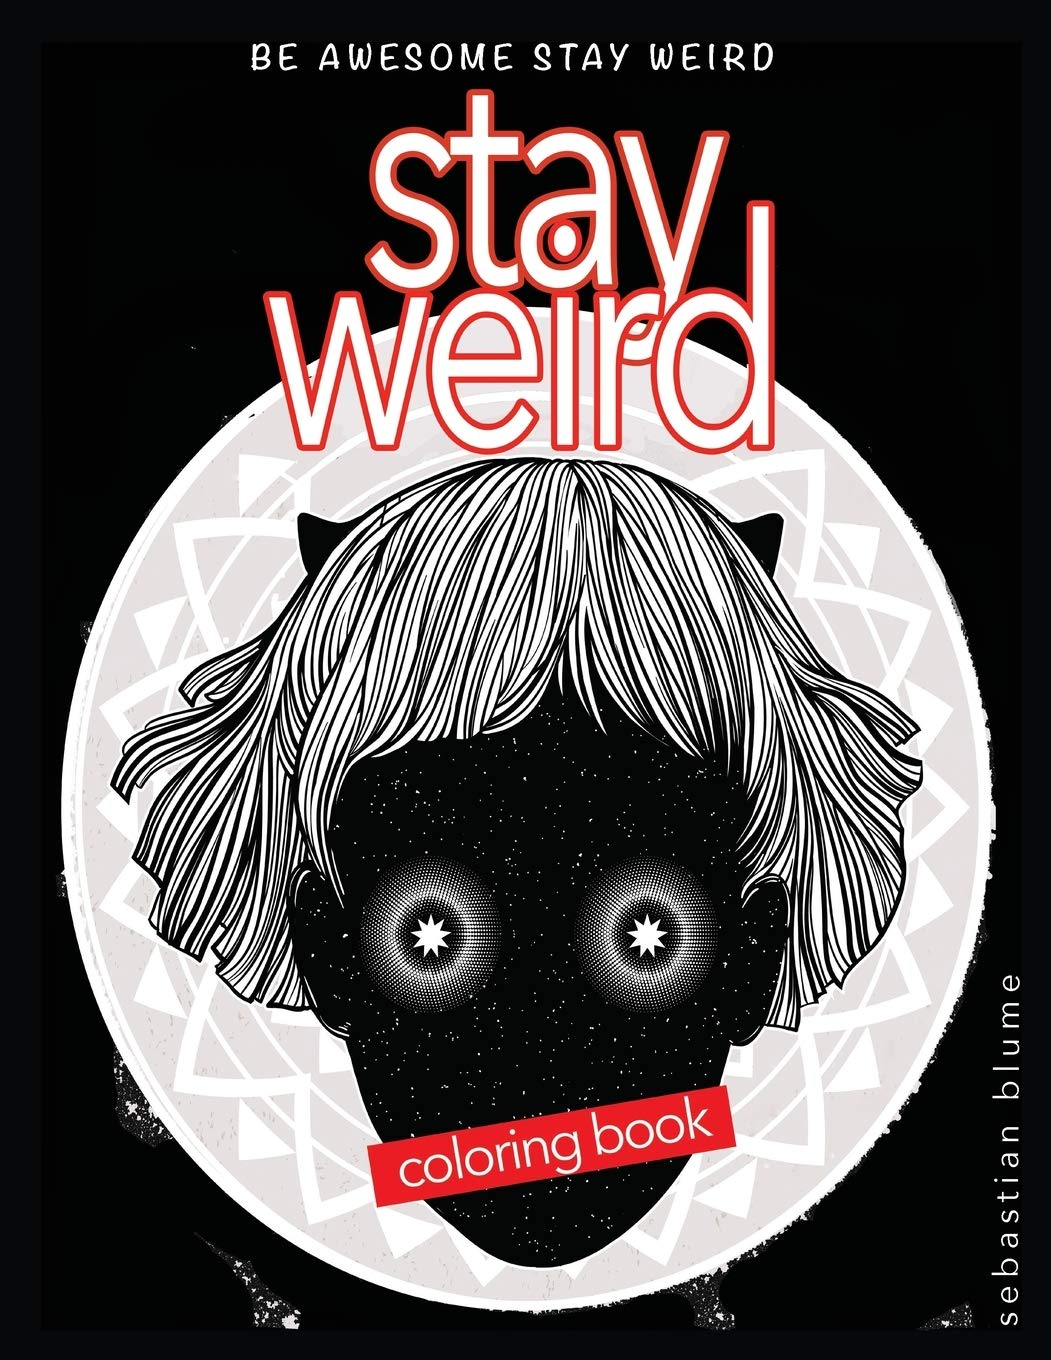 - Stay Weird Coloring Book: Be Awesome Stay Weird (Stay Weird